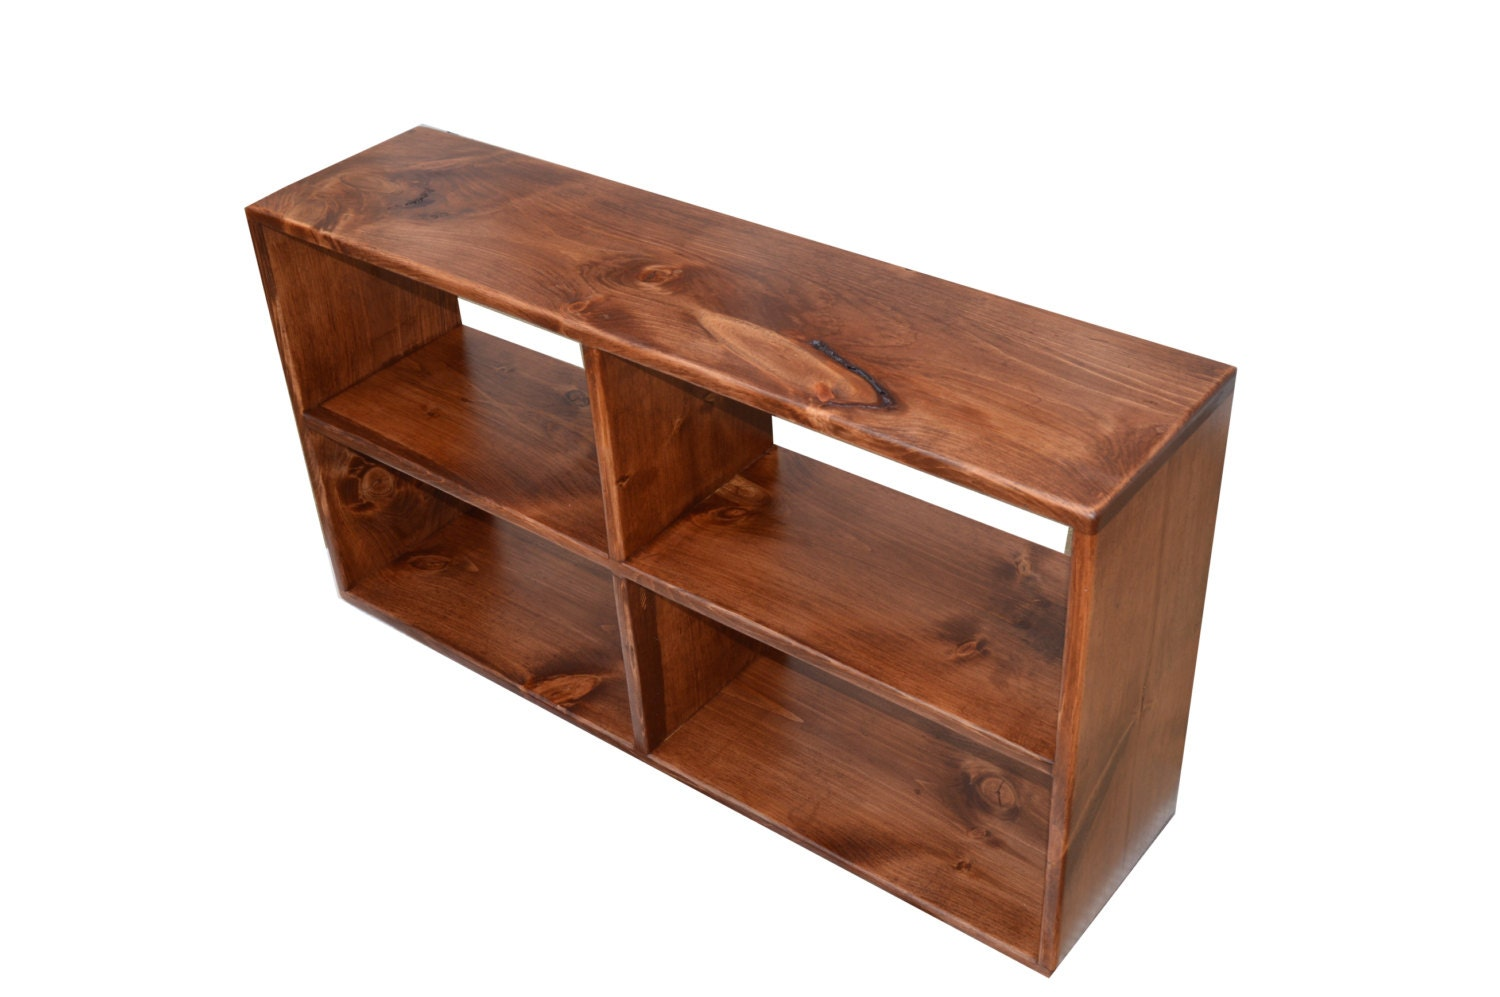 4 Cubby Toy Storage Bench Media Shelf Entryway Bench